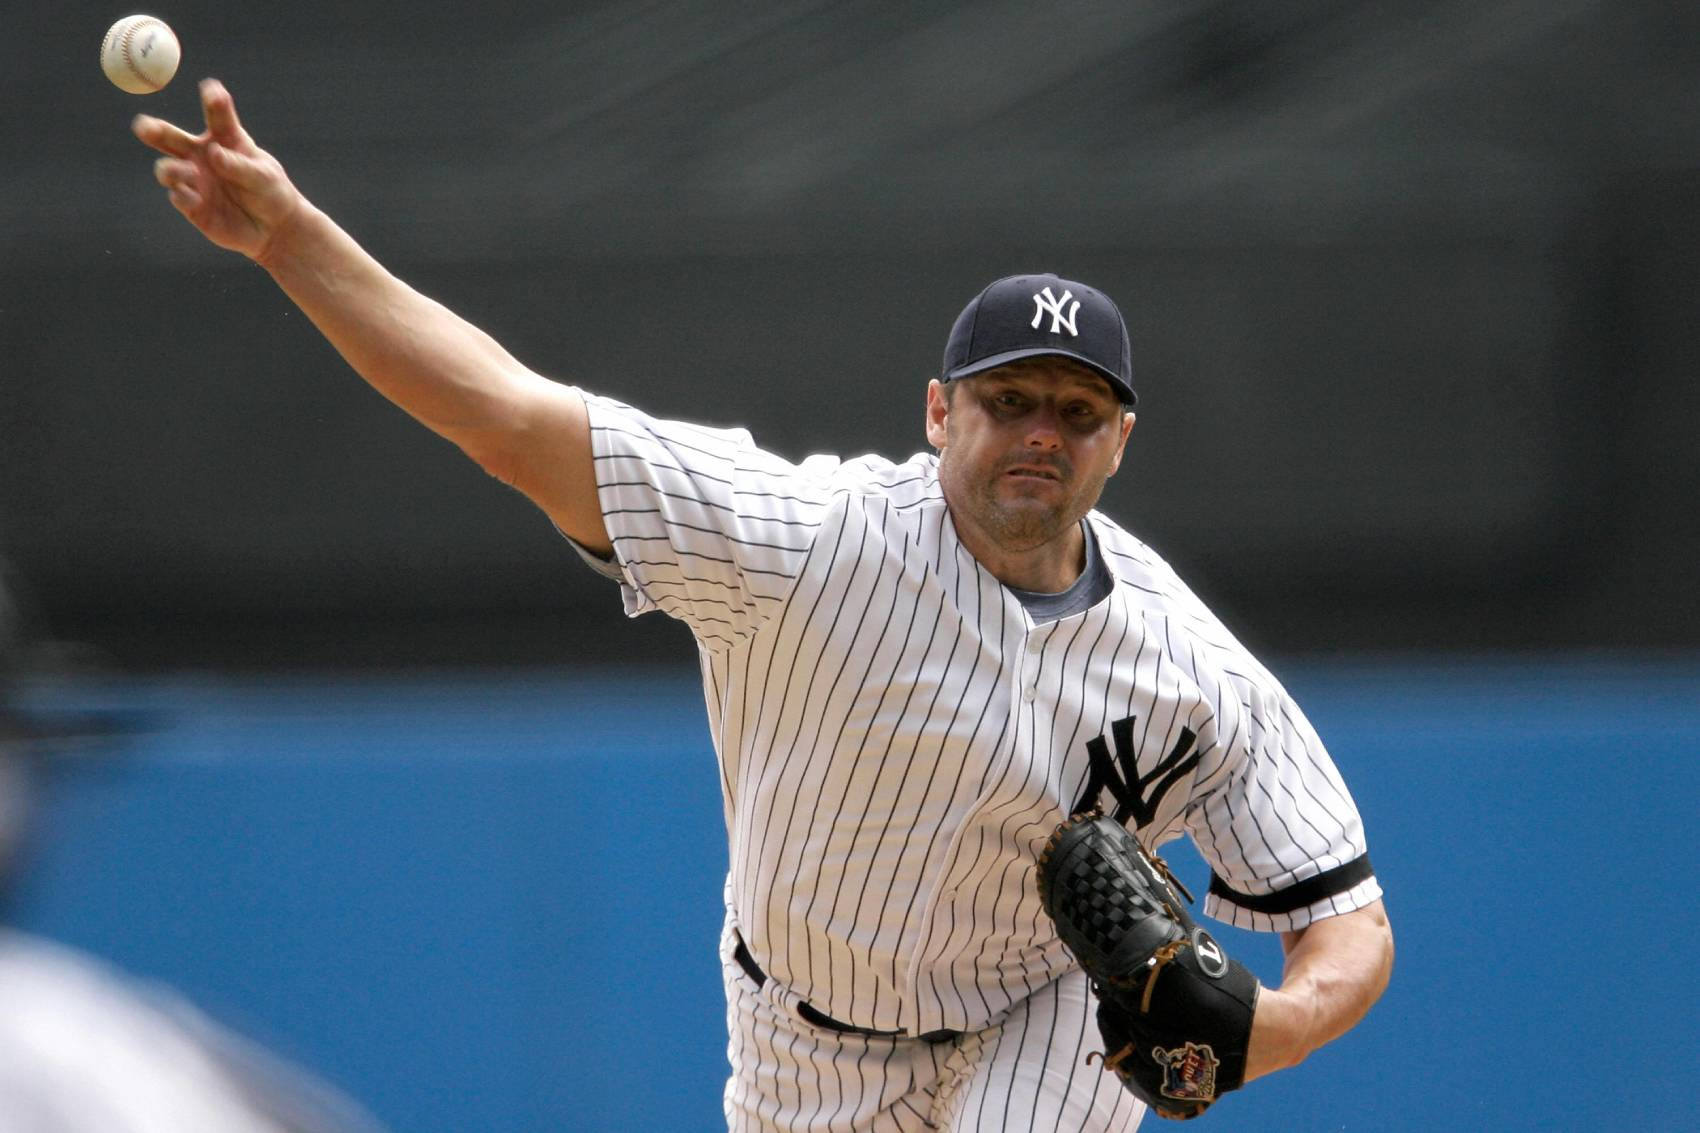 Former Yankees ace Roger Clemens will manage an independent league team with his son this summer.